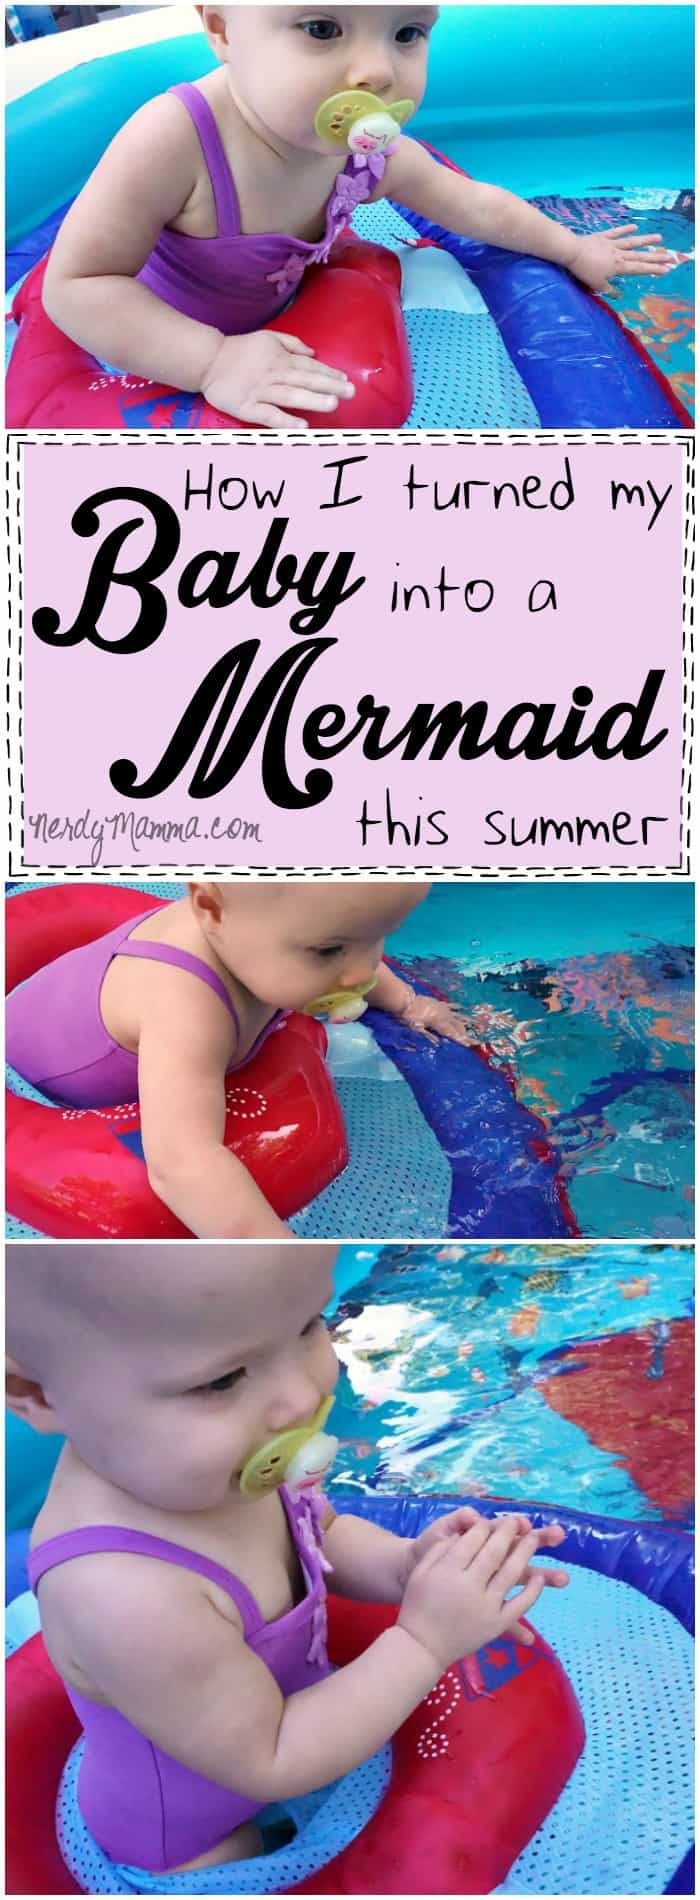 I love this mom's easy way to make her baby comfortable in the water! This is awesome.